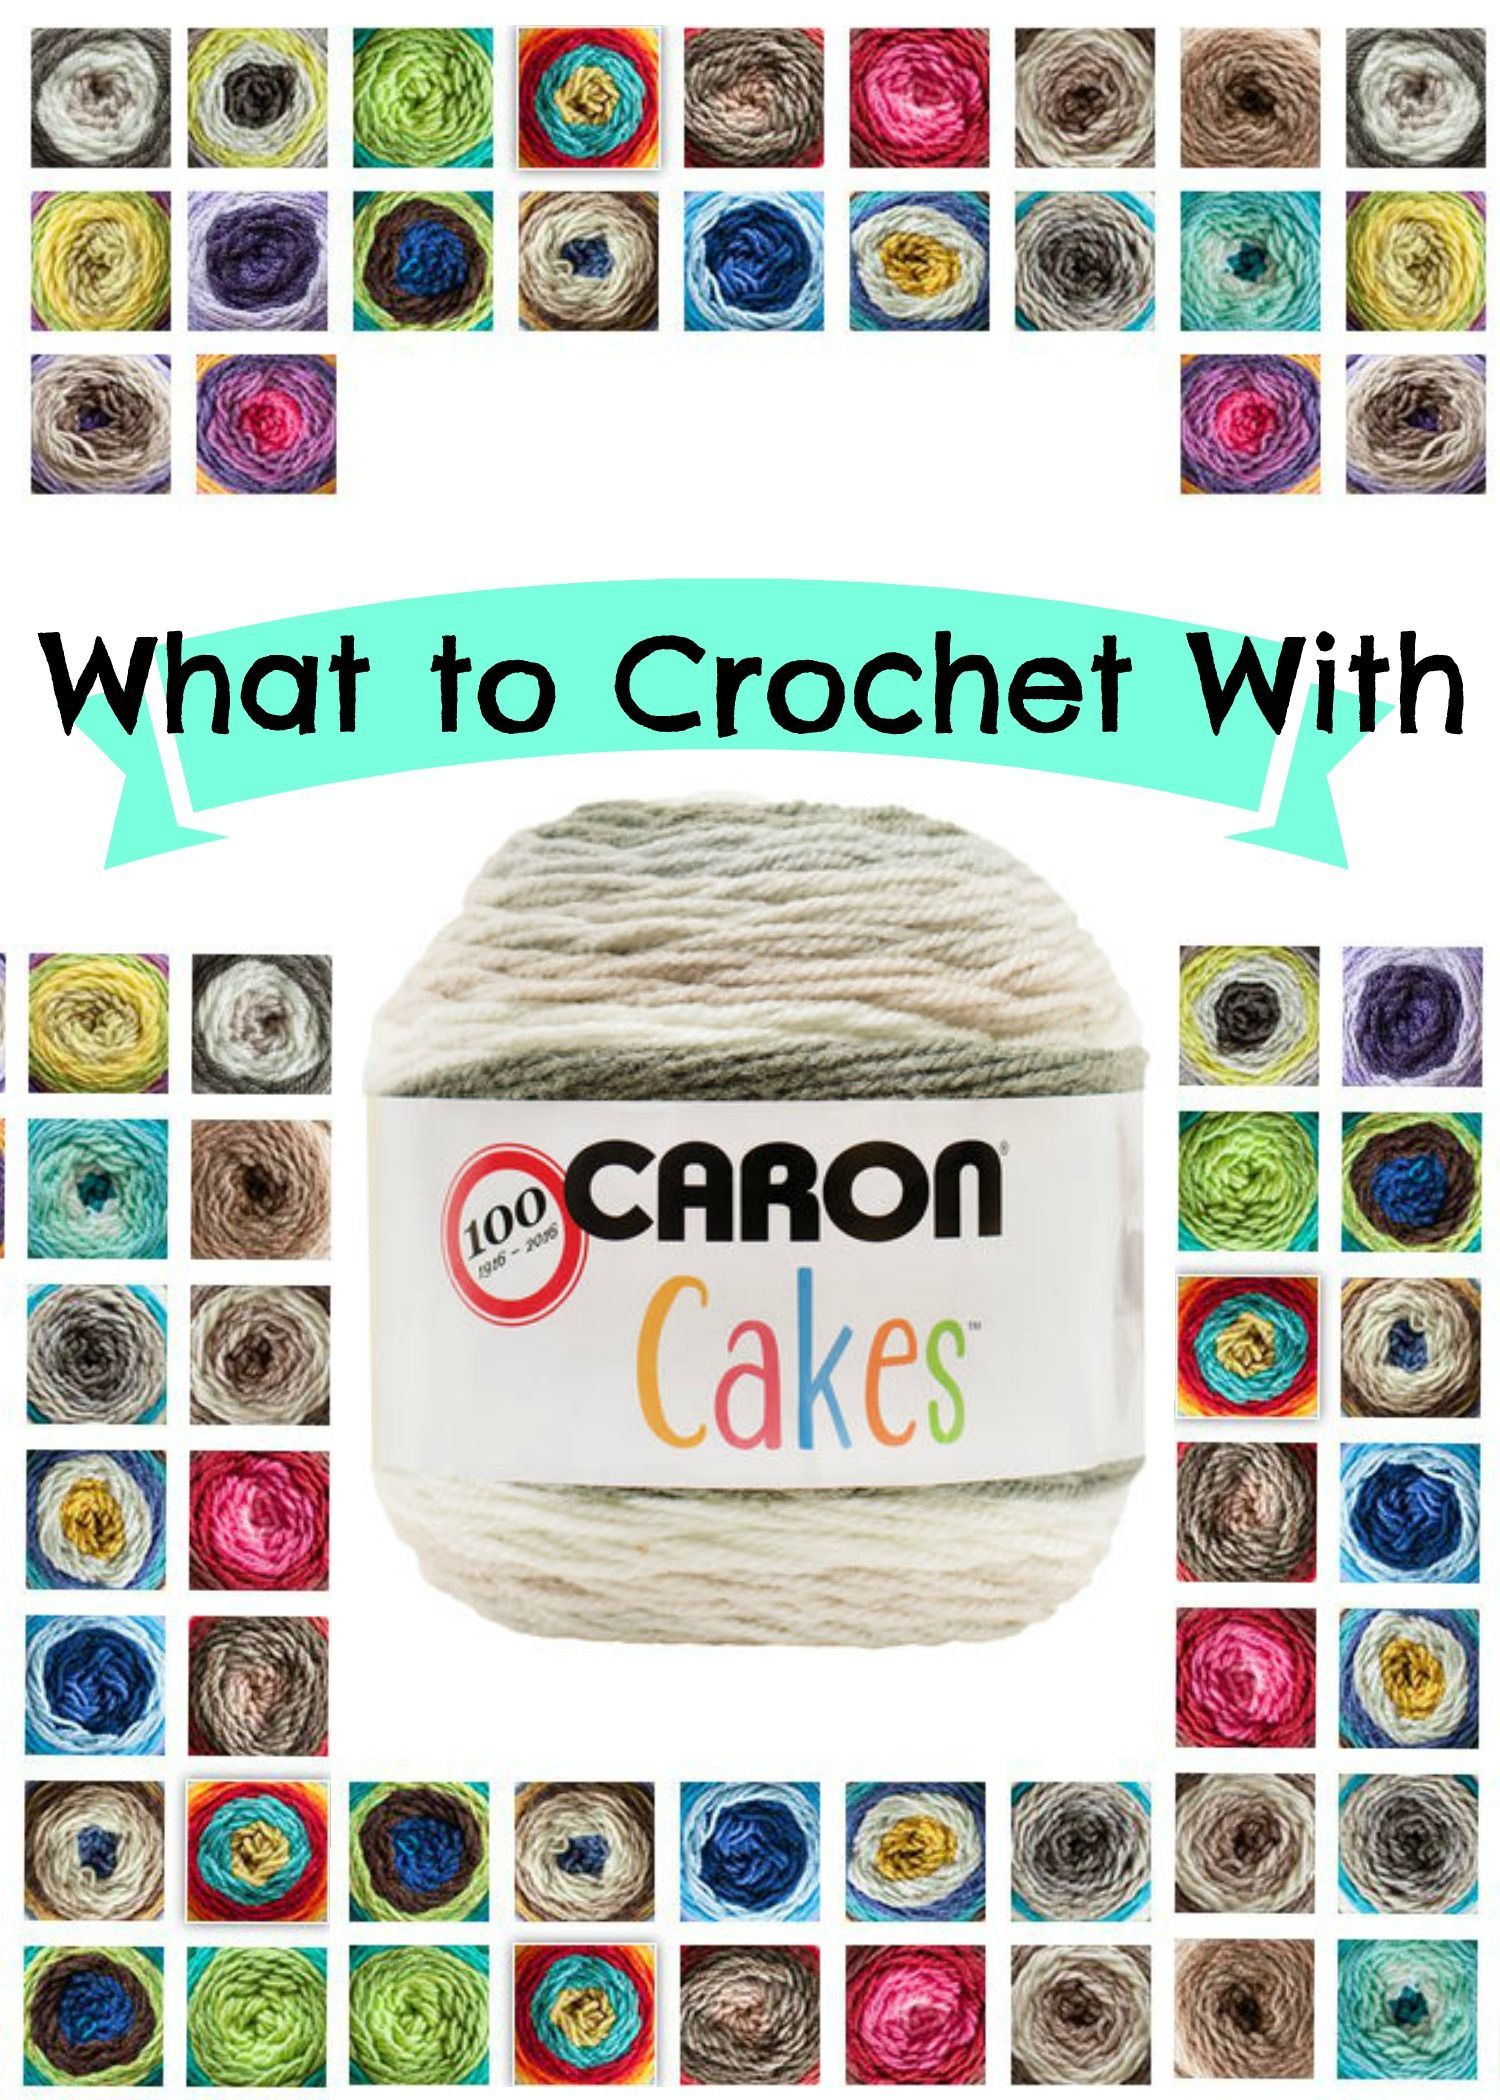 Caron Cakes Crochet Projects